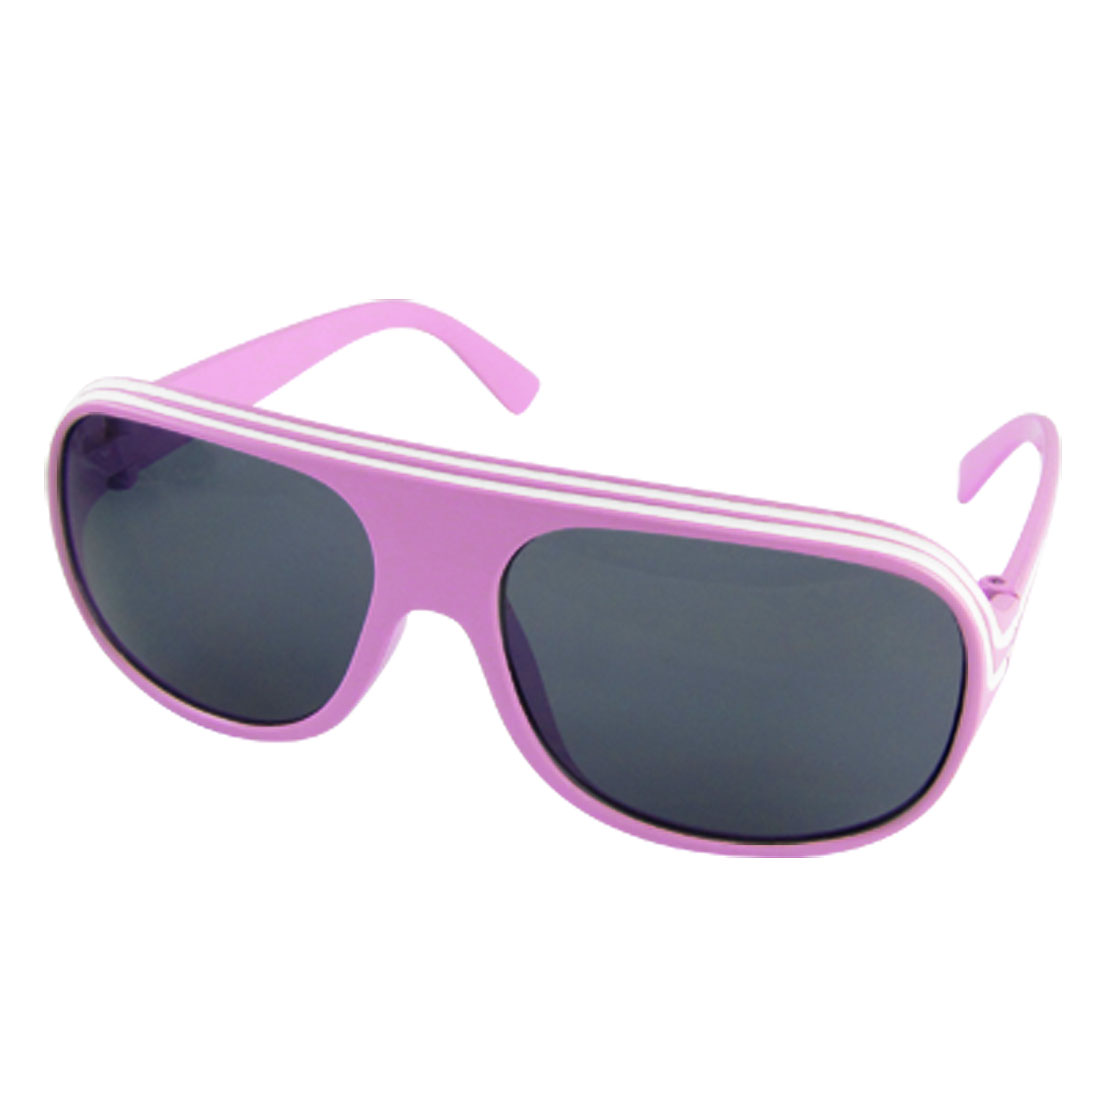 Plastic Frame UV Protection Sunglasses Decor for Children